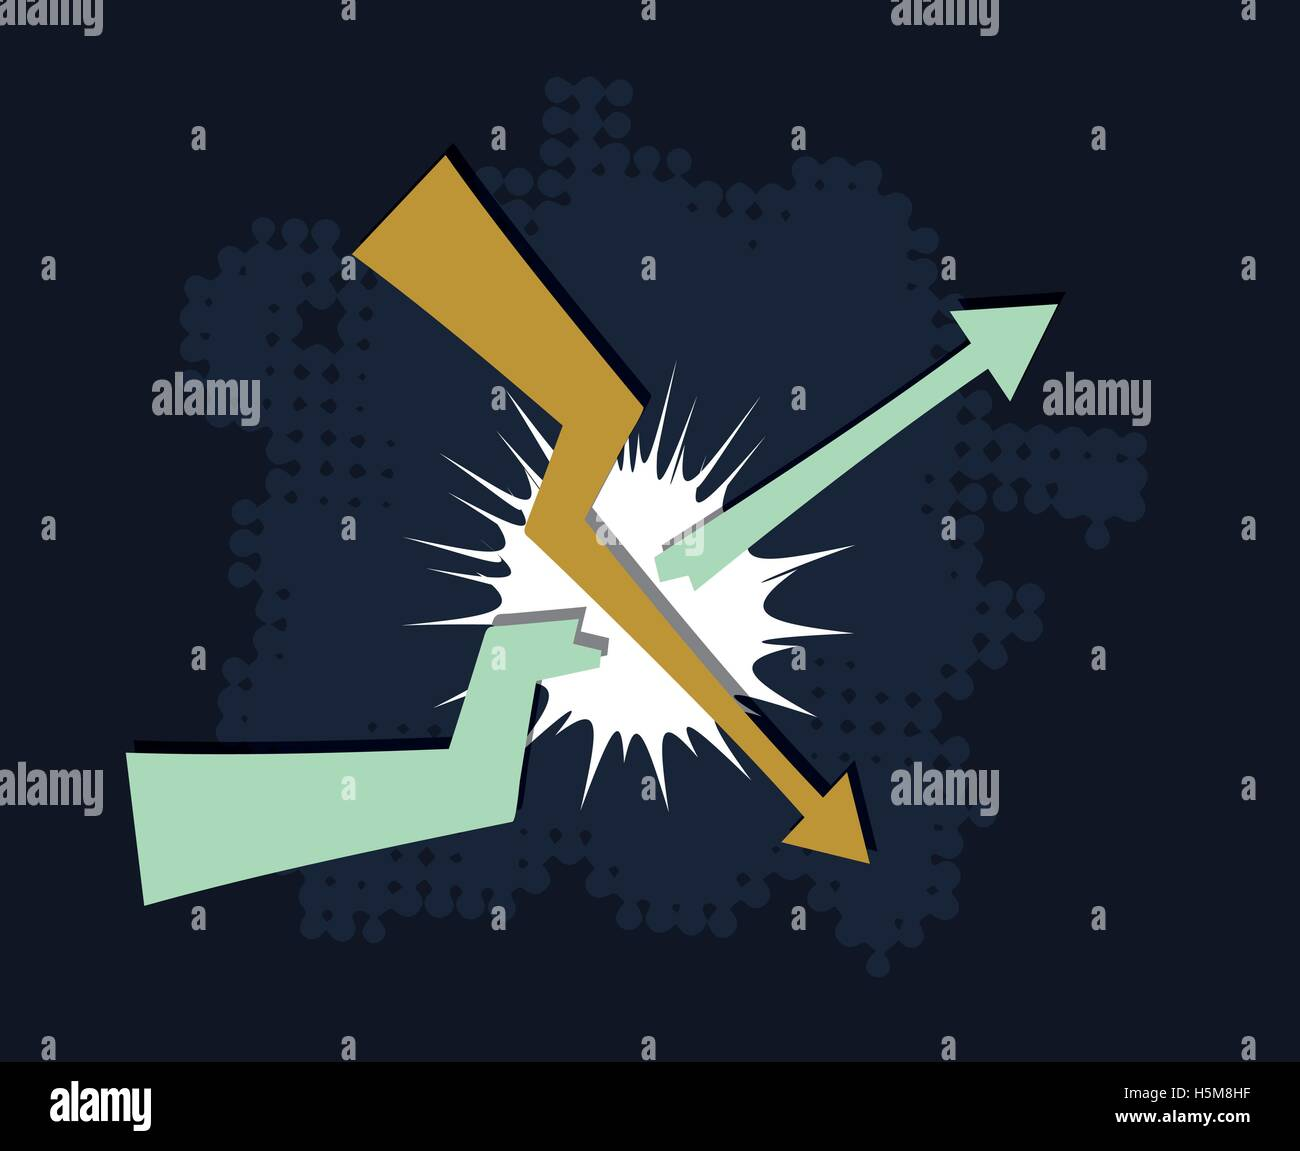 falling down trend breaks upcoming trend financial crisis concept abstract vector illustration - Stock Vector